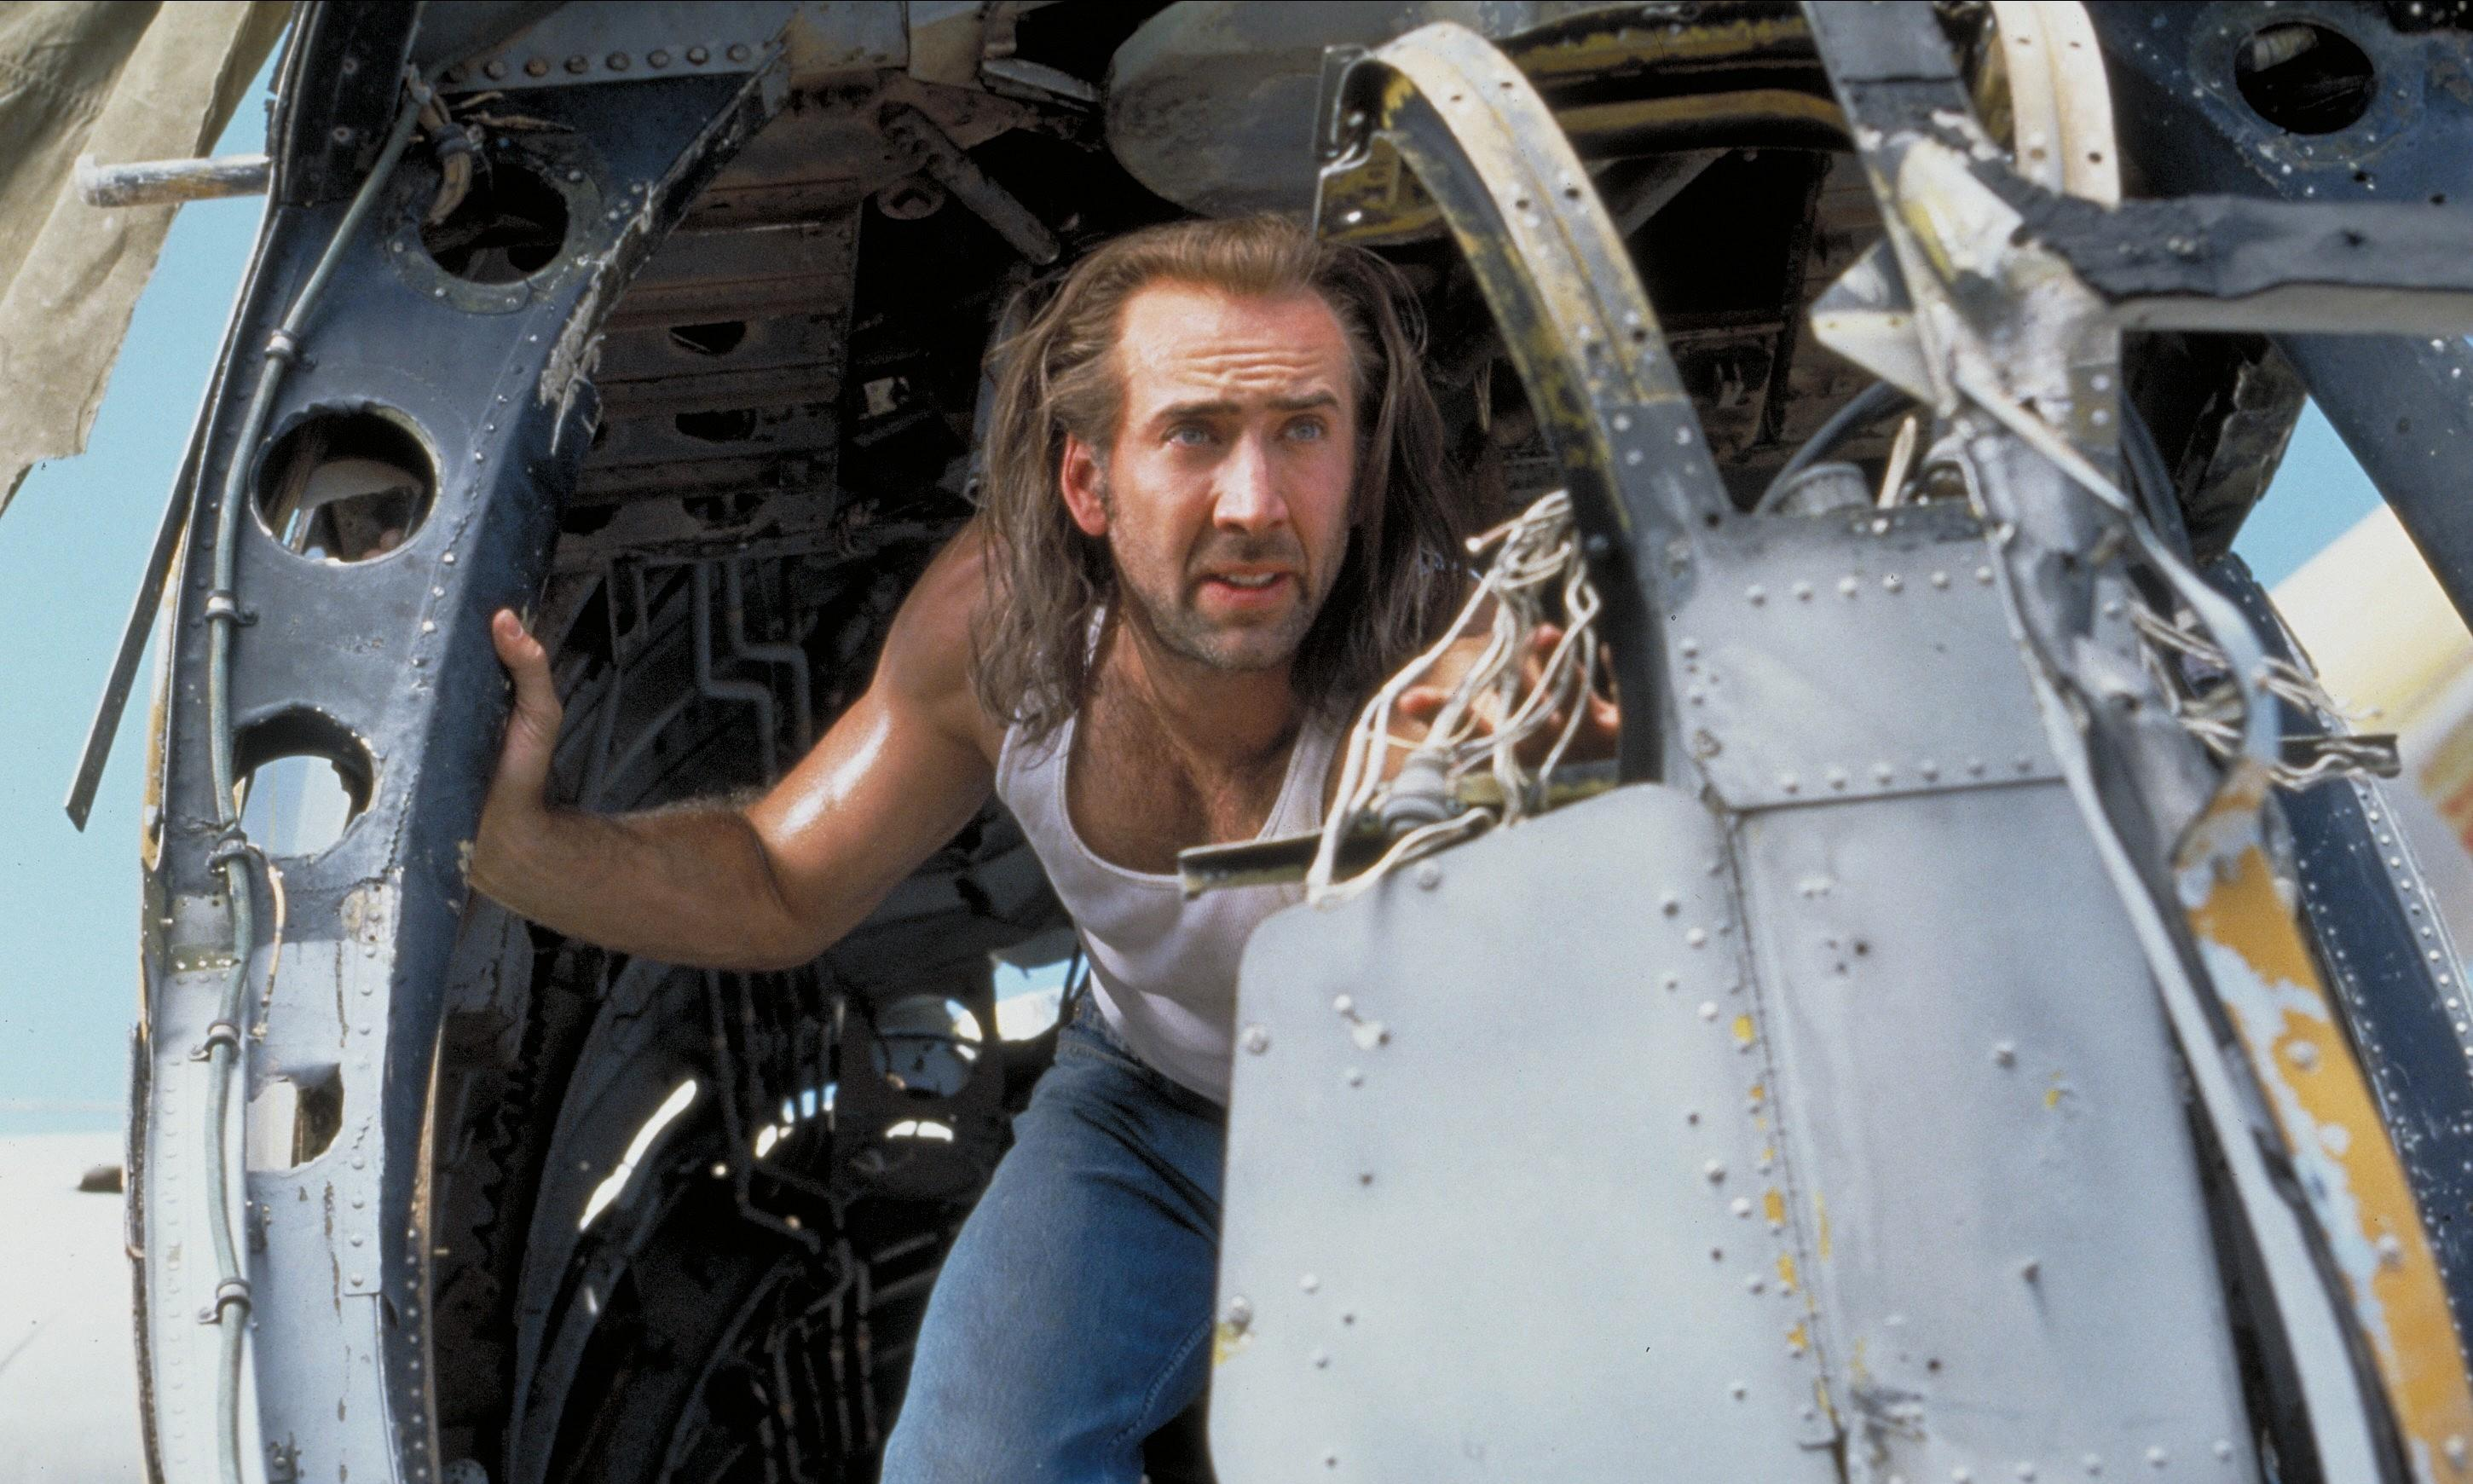 I watched Nicolas Cage movies for 14 hours straight, and I'm sold